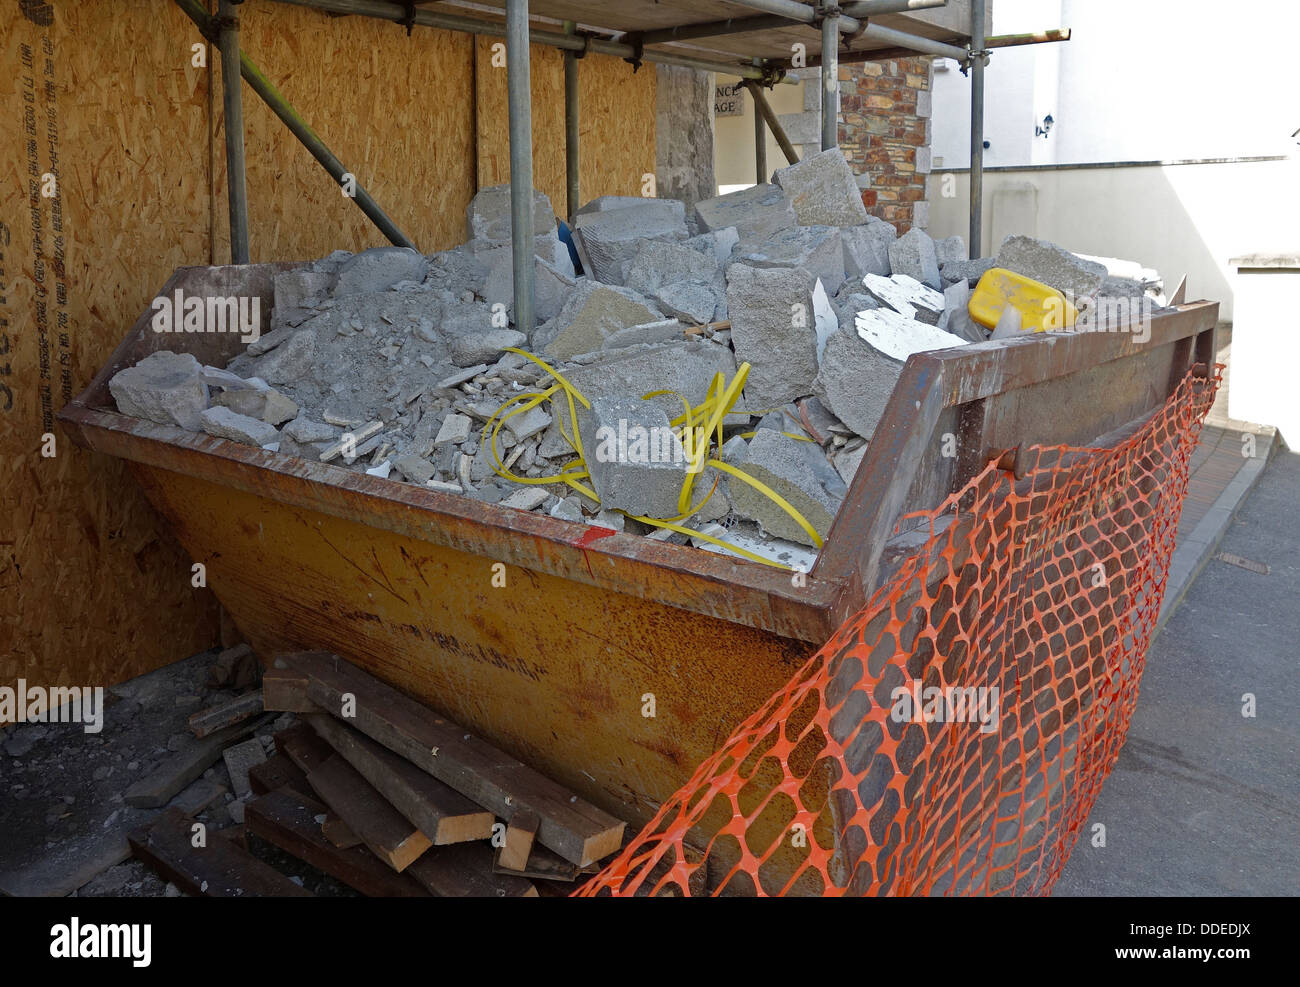 A builders skip full of debris - Stock Image